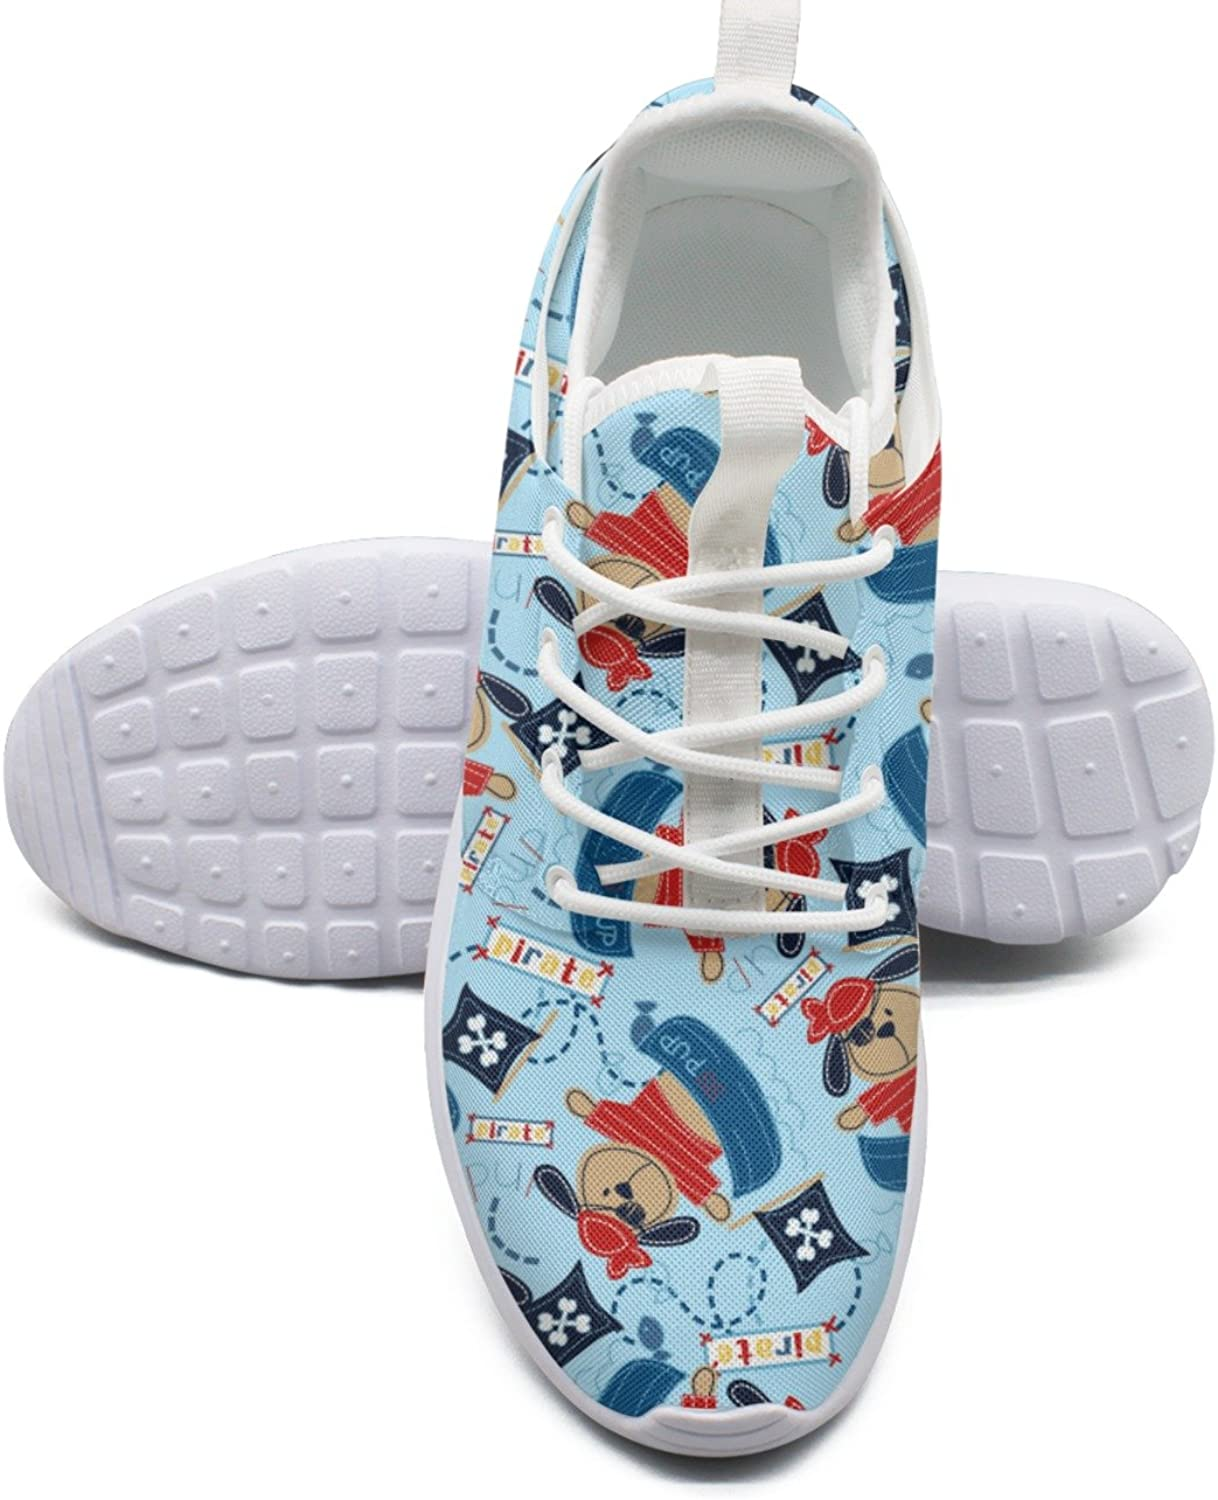 ERSER Pirate Pup Dog Flag in His Boat bluee Safety Running shoes Women